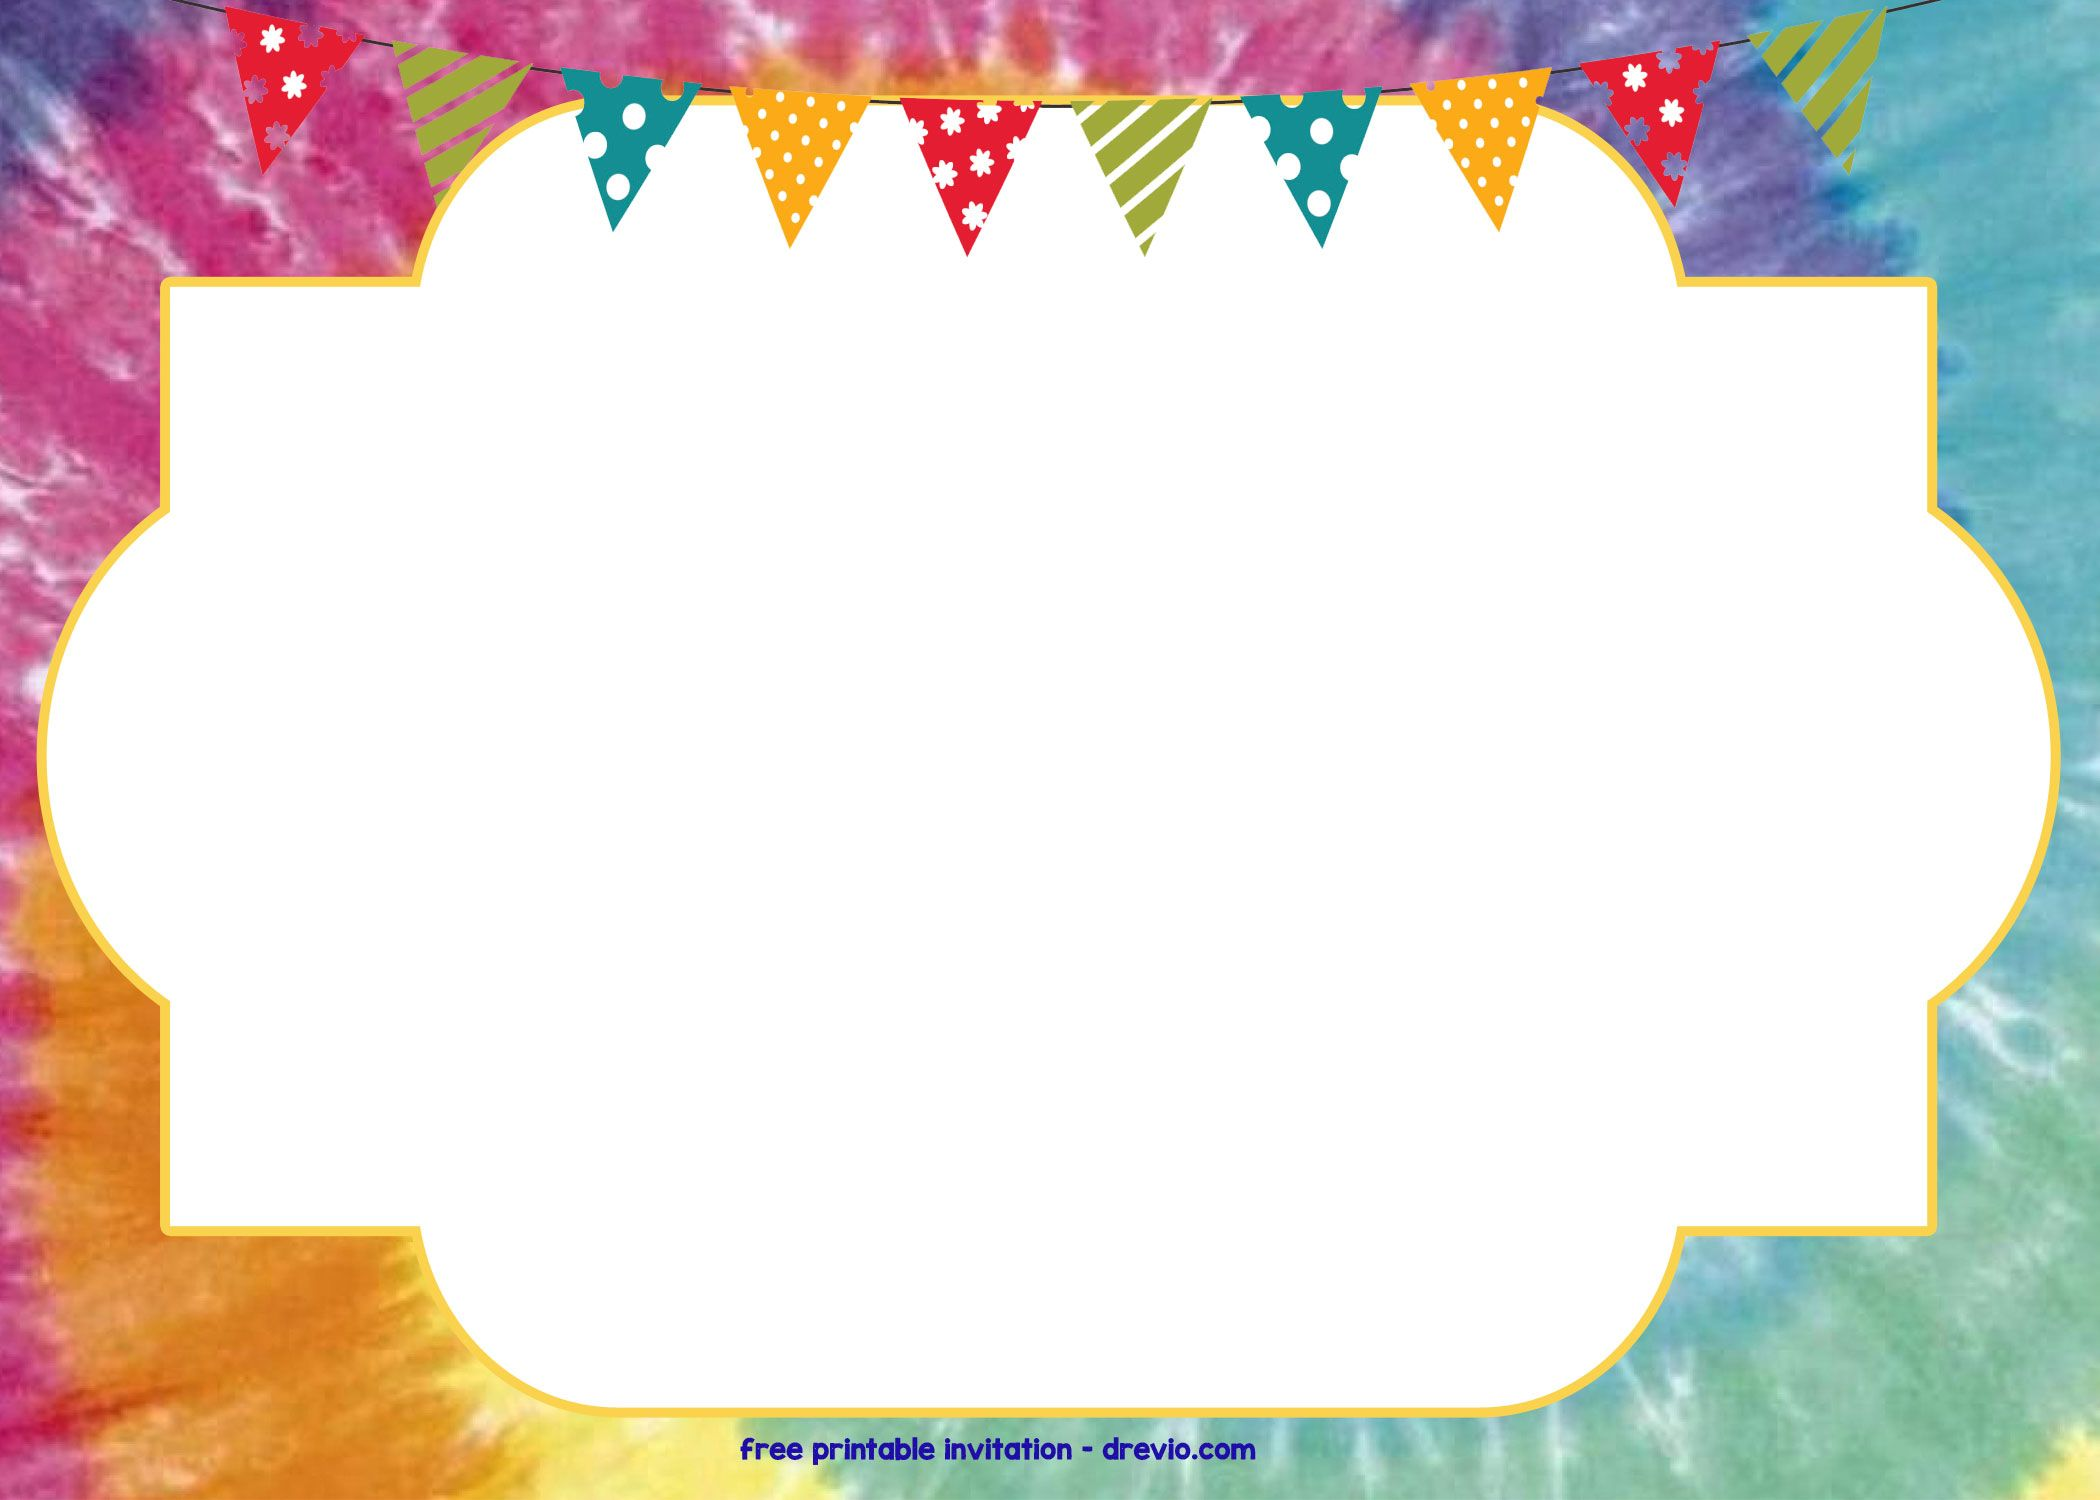 Tie Dye Invitation Template Free